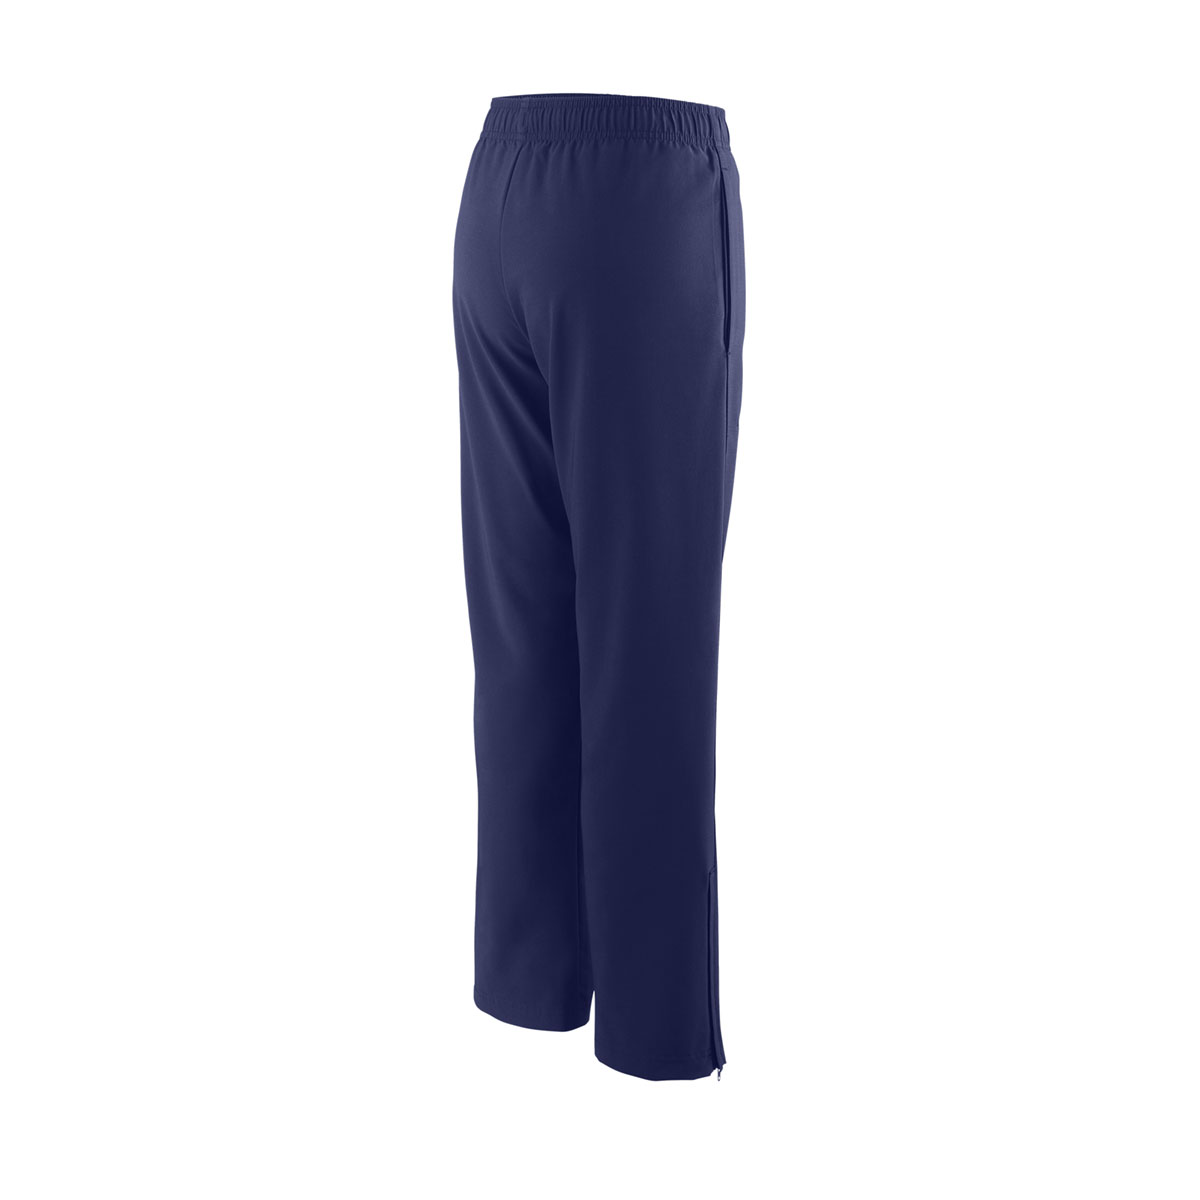 WRA767503_4_SS18_Team_Y_Team_Woven_Warmup_Pant_BlueDepths_Back